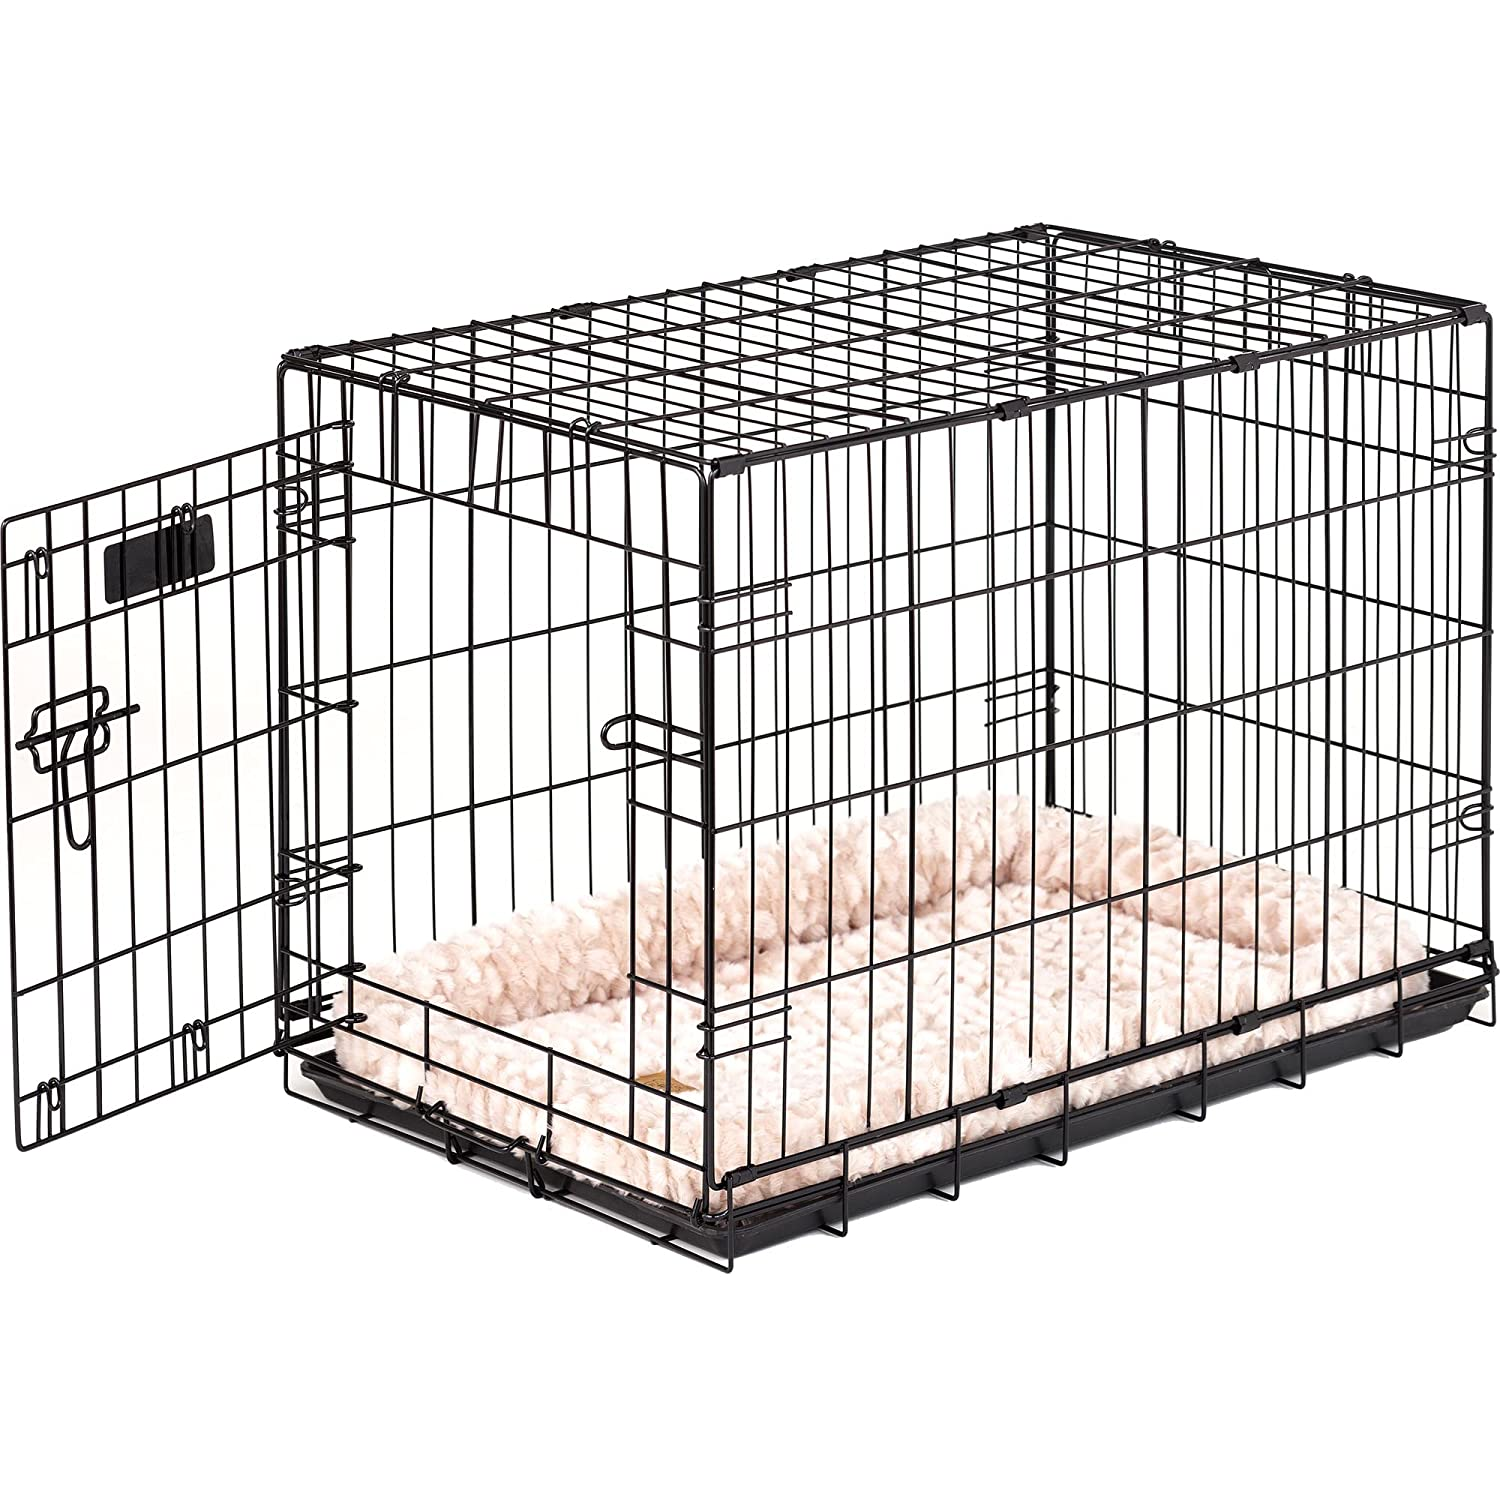 30-inches x 19-inches x 21-inches Precision Pet 7011243 ProValu, Single Door Dog Crate, Black